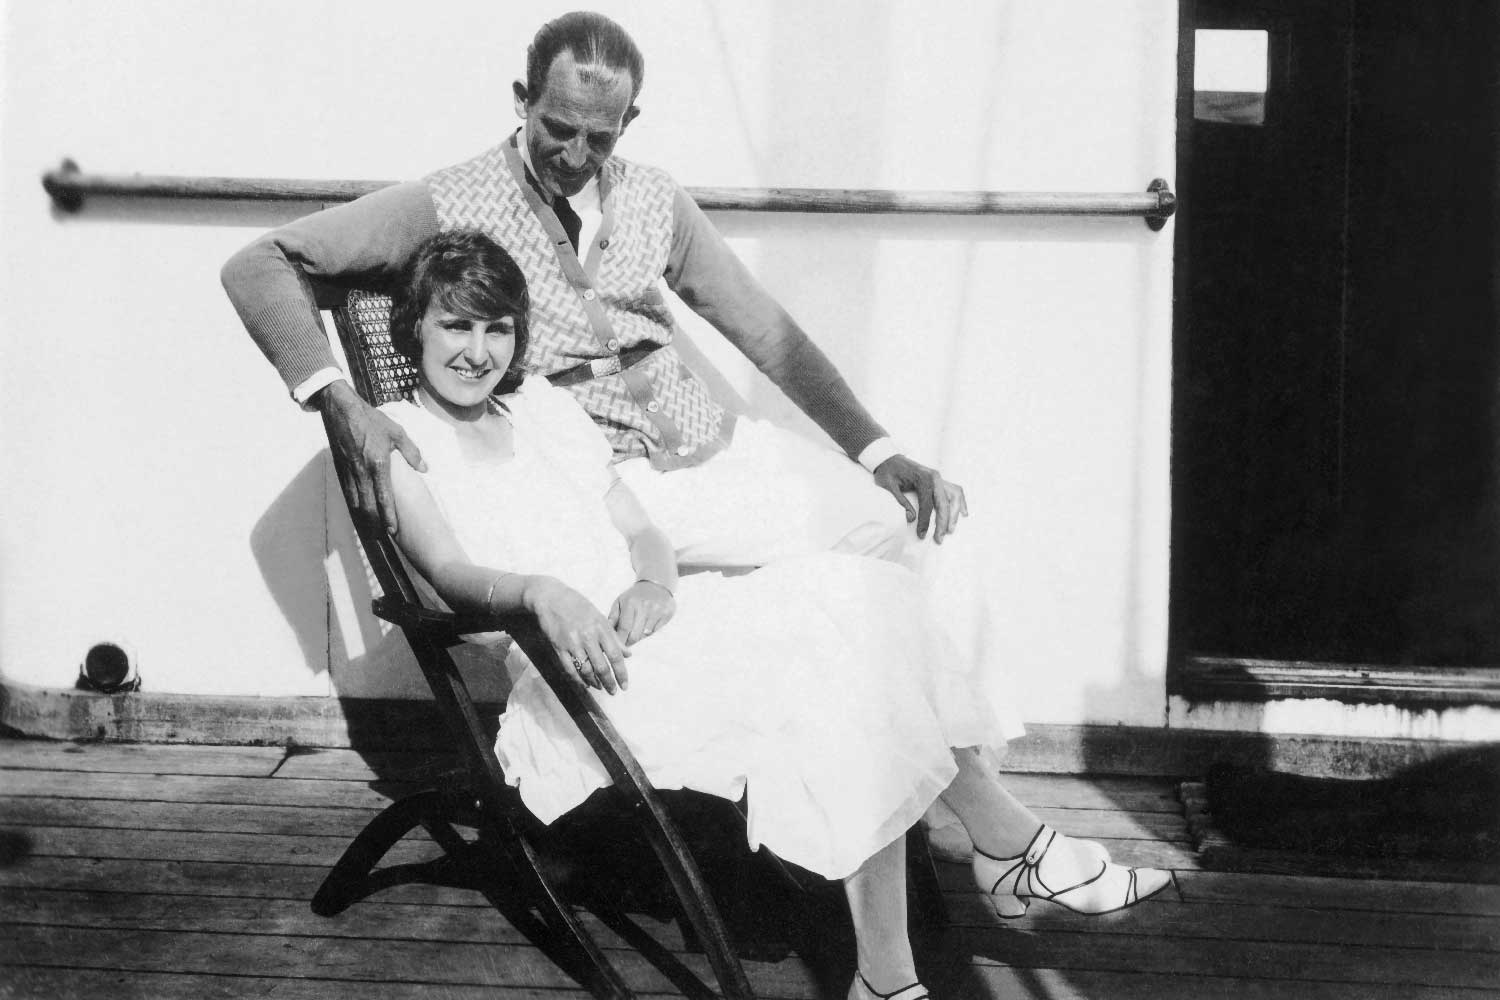 In the 1920s, Carl Eduard and his wife Wilhelmina Bucherer-Heeb ventured far across the Atlantic to progress the business in Santiago, Chile in South America.